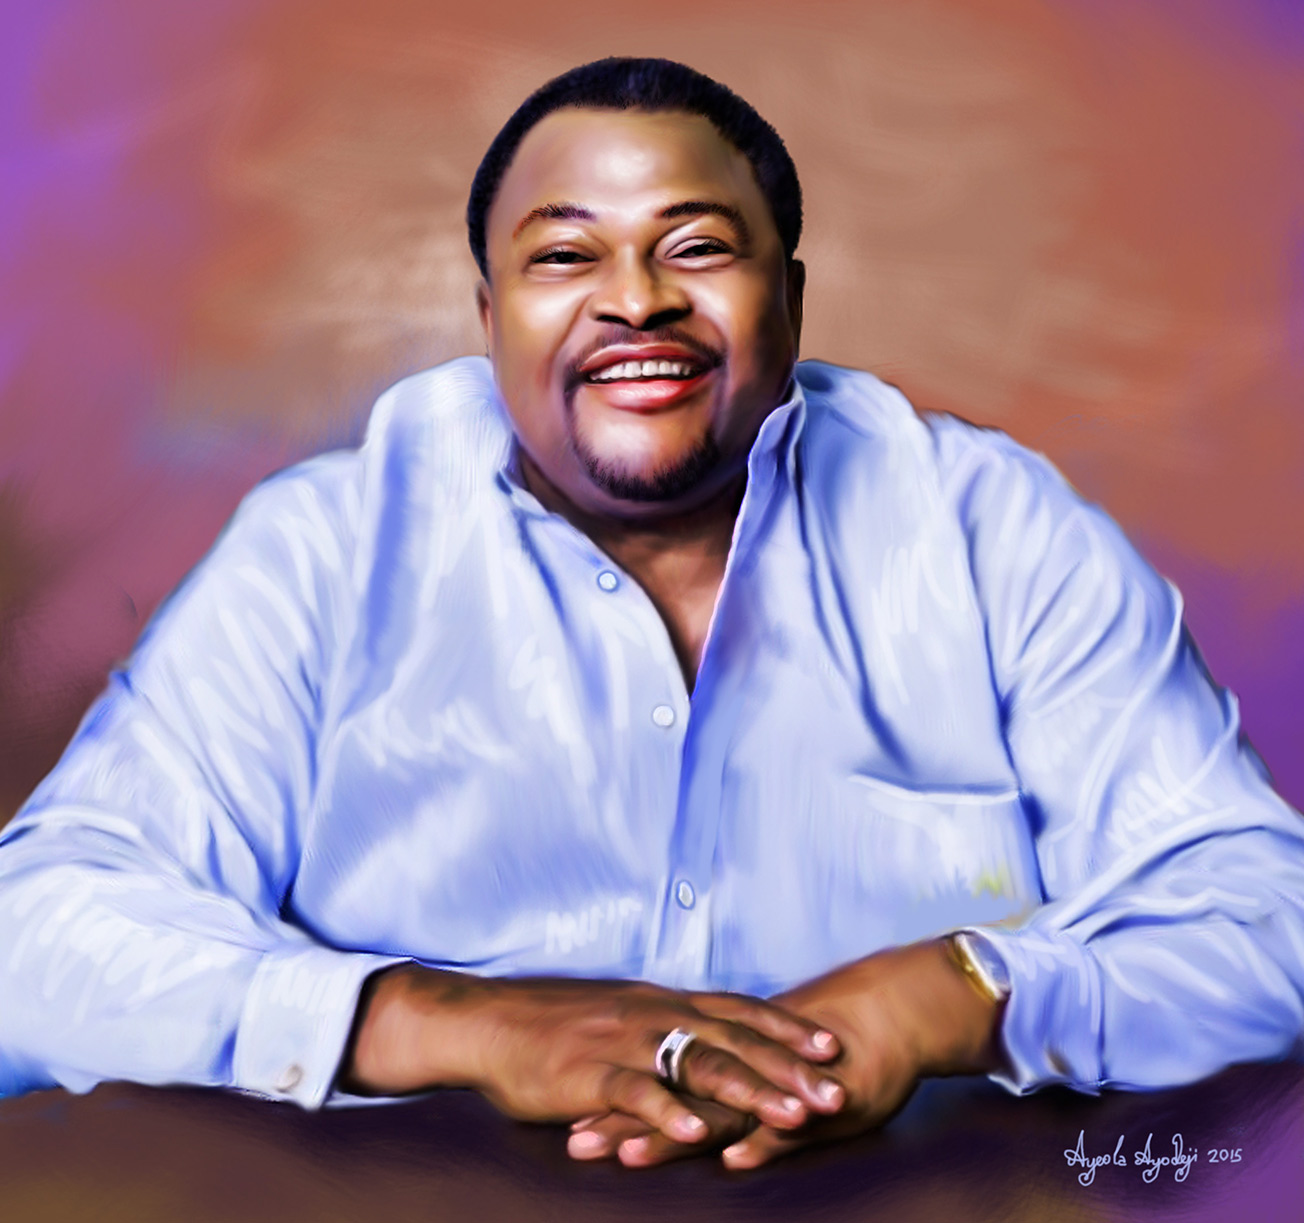 mike adenuga 1 No 1 artist in lagos nigeria